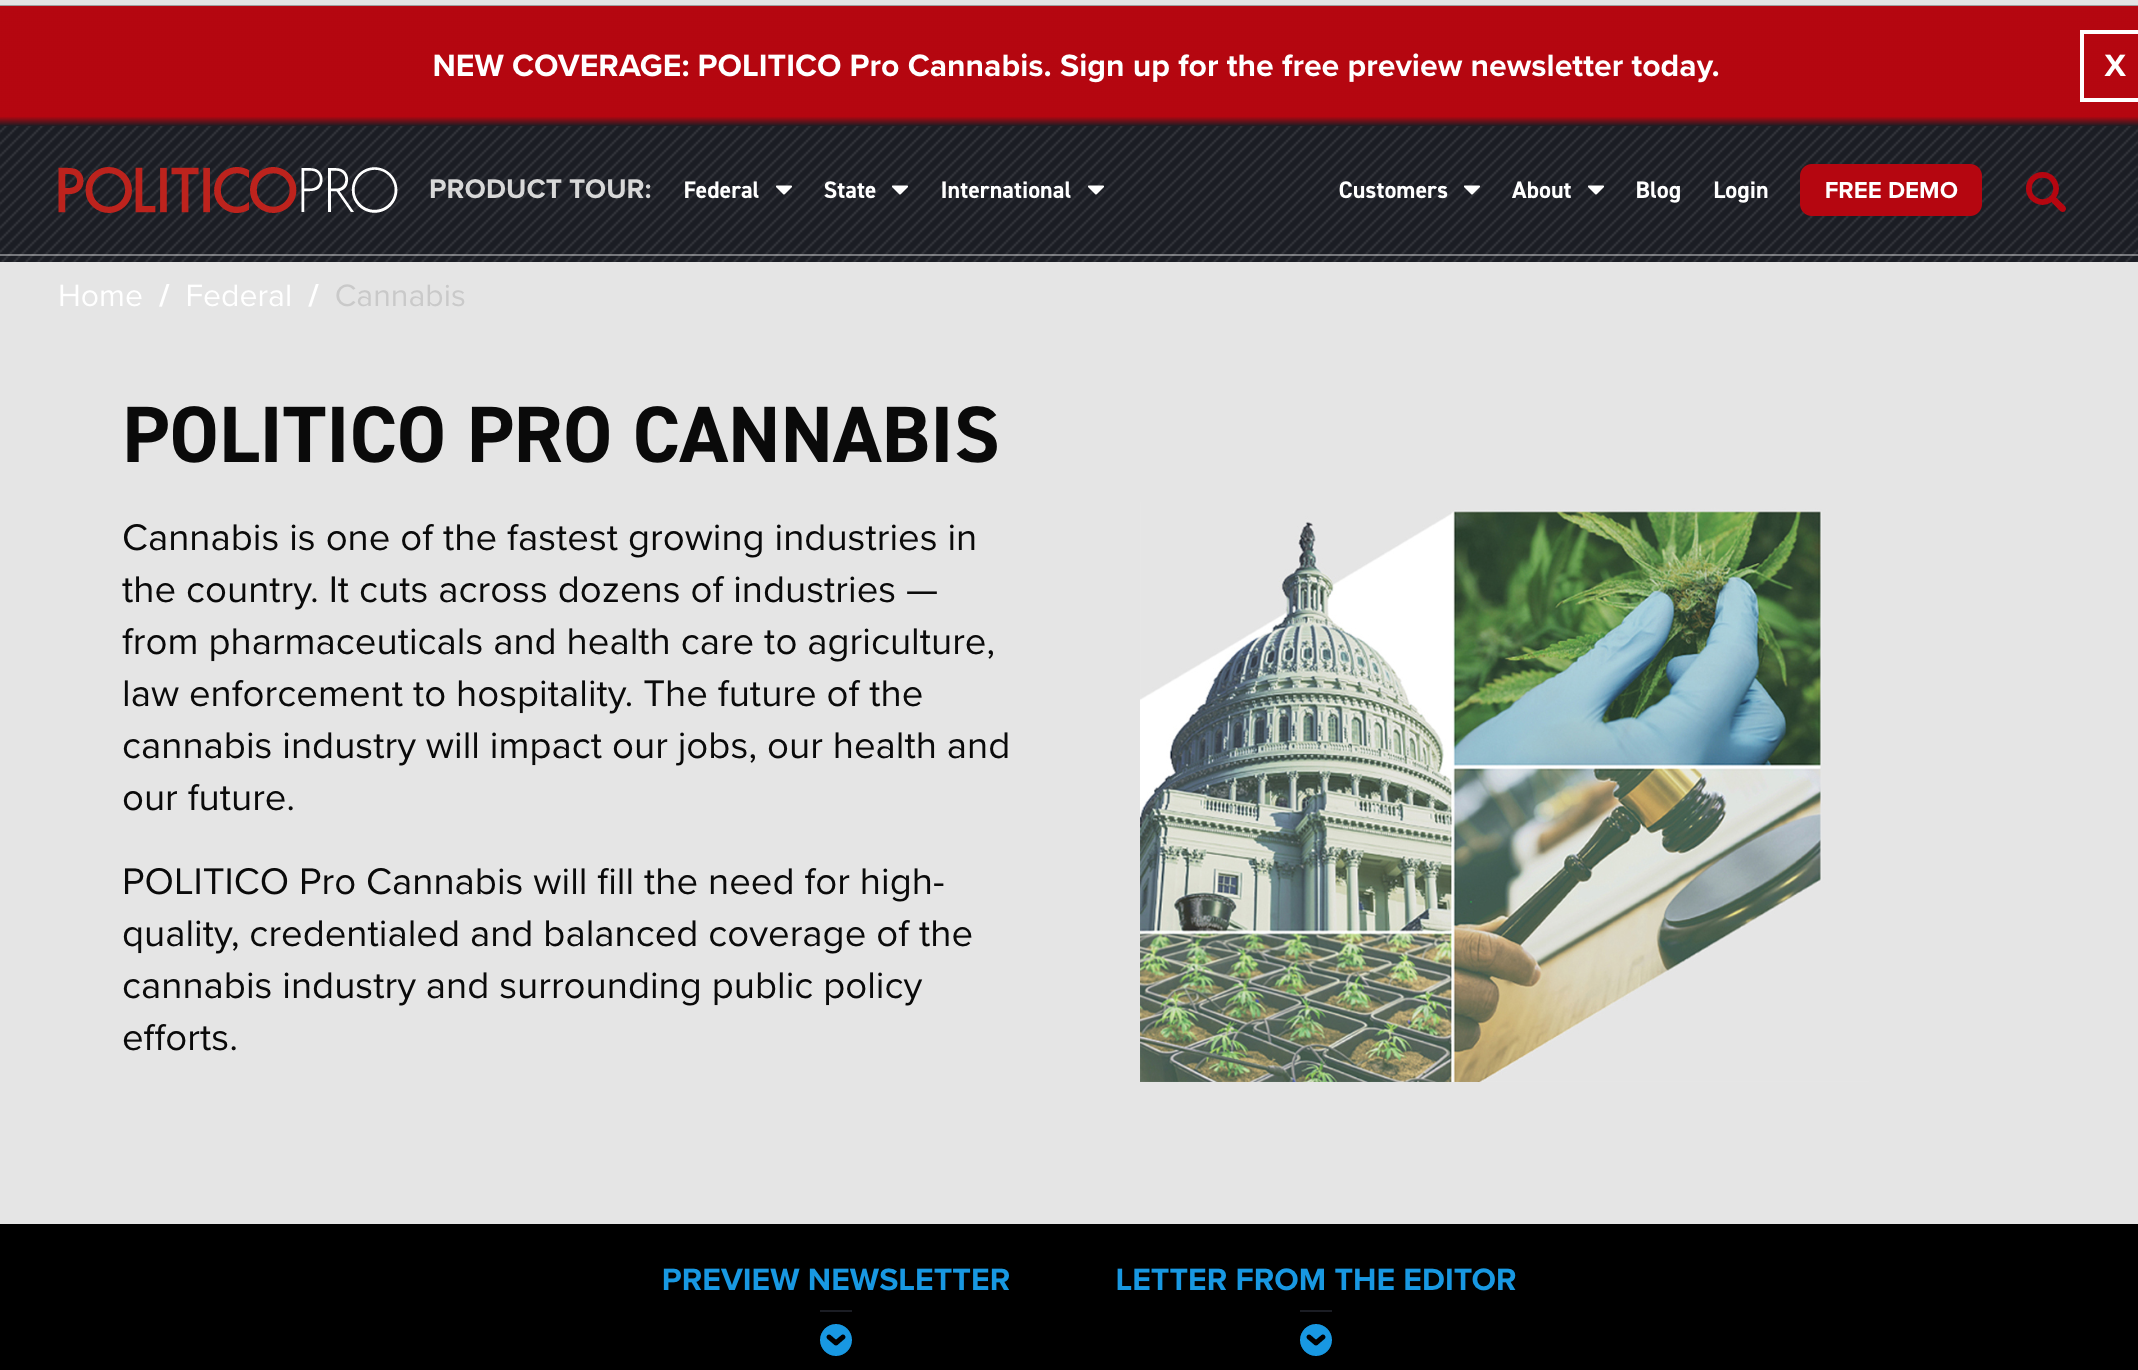 New Politico Pro Newsletter Will Focus on Cannabis Regulation and Policy